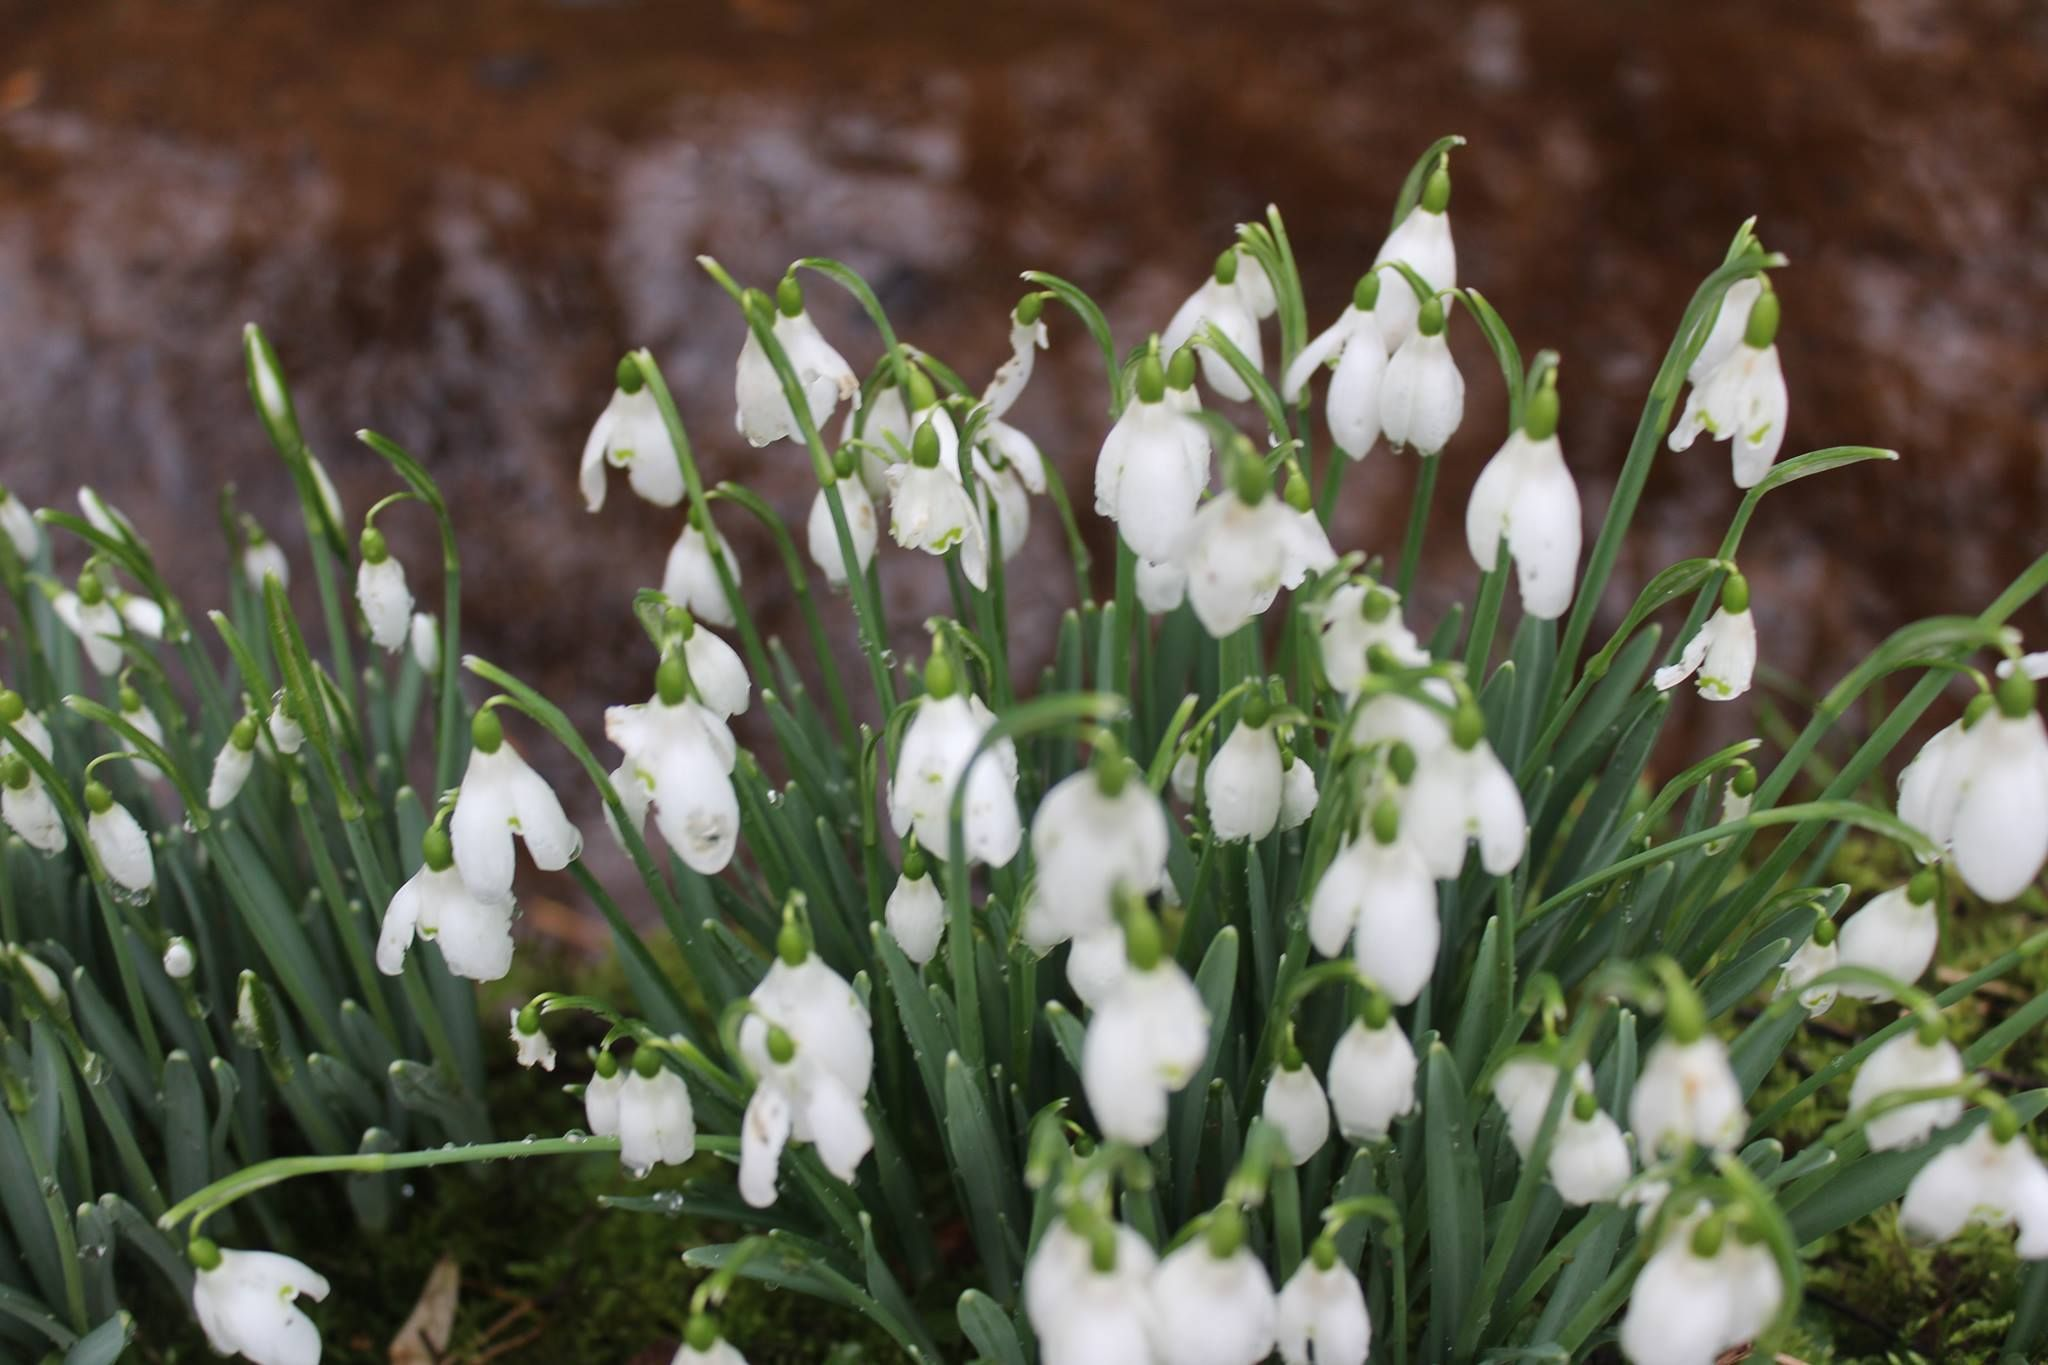 Bell Shaped Snow Drops Are Also Known As Galanthus Which In Latin